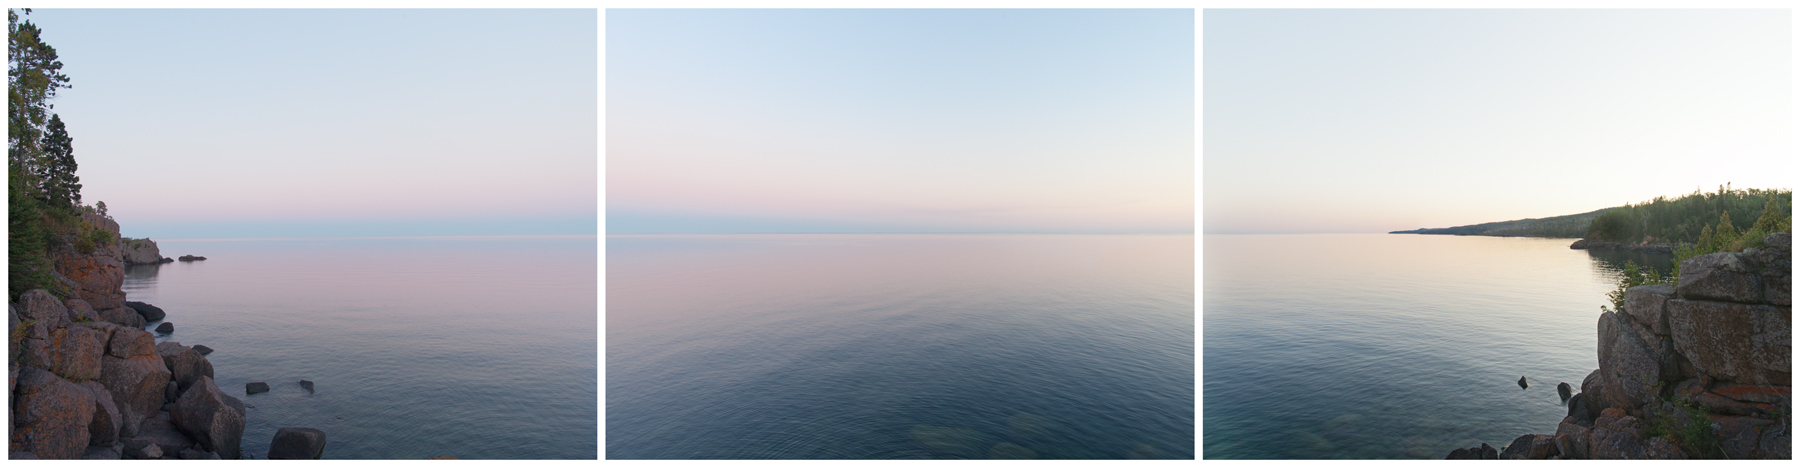 TriptychTemplate_LakeSuperior4_plus_WithBorders